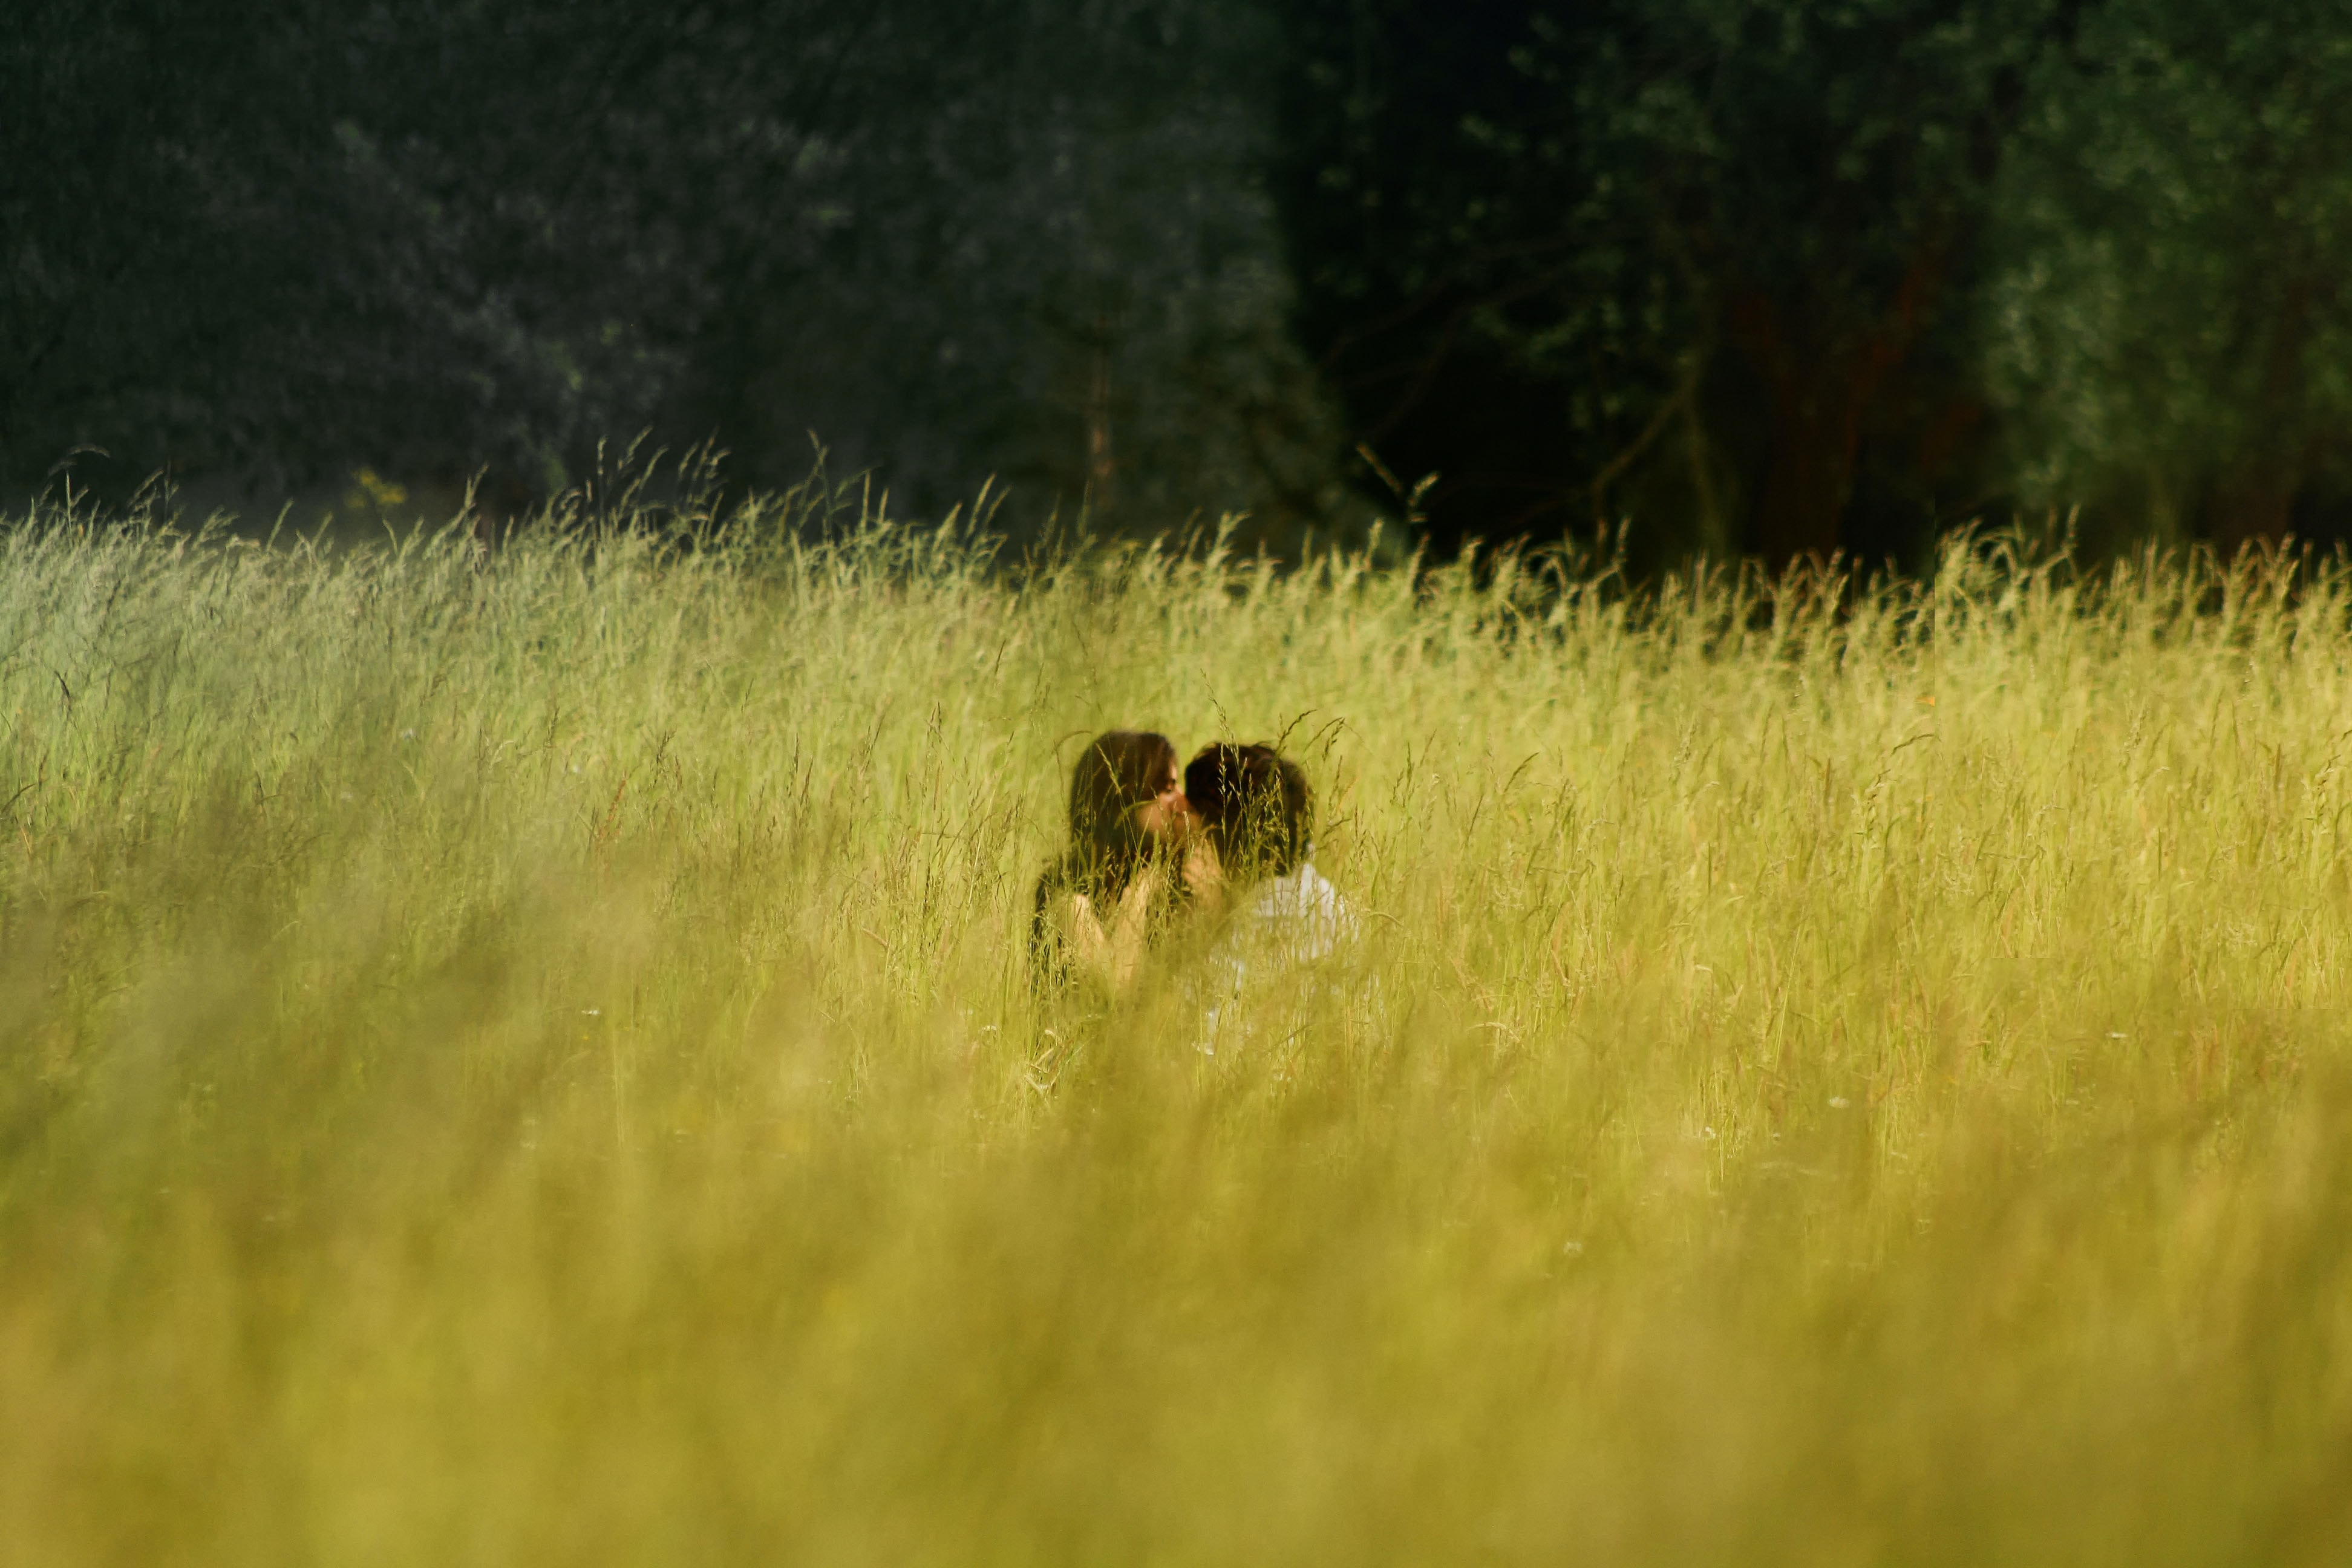 Man and woman kissing in a field at La Fresneda, partially obscured by long waving grasses